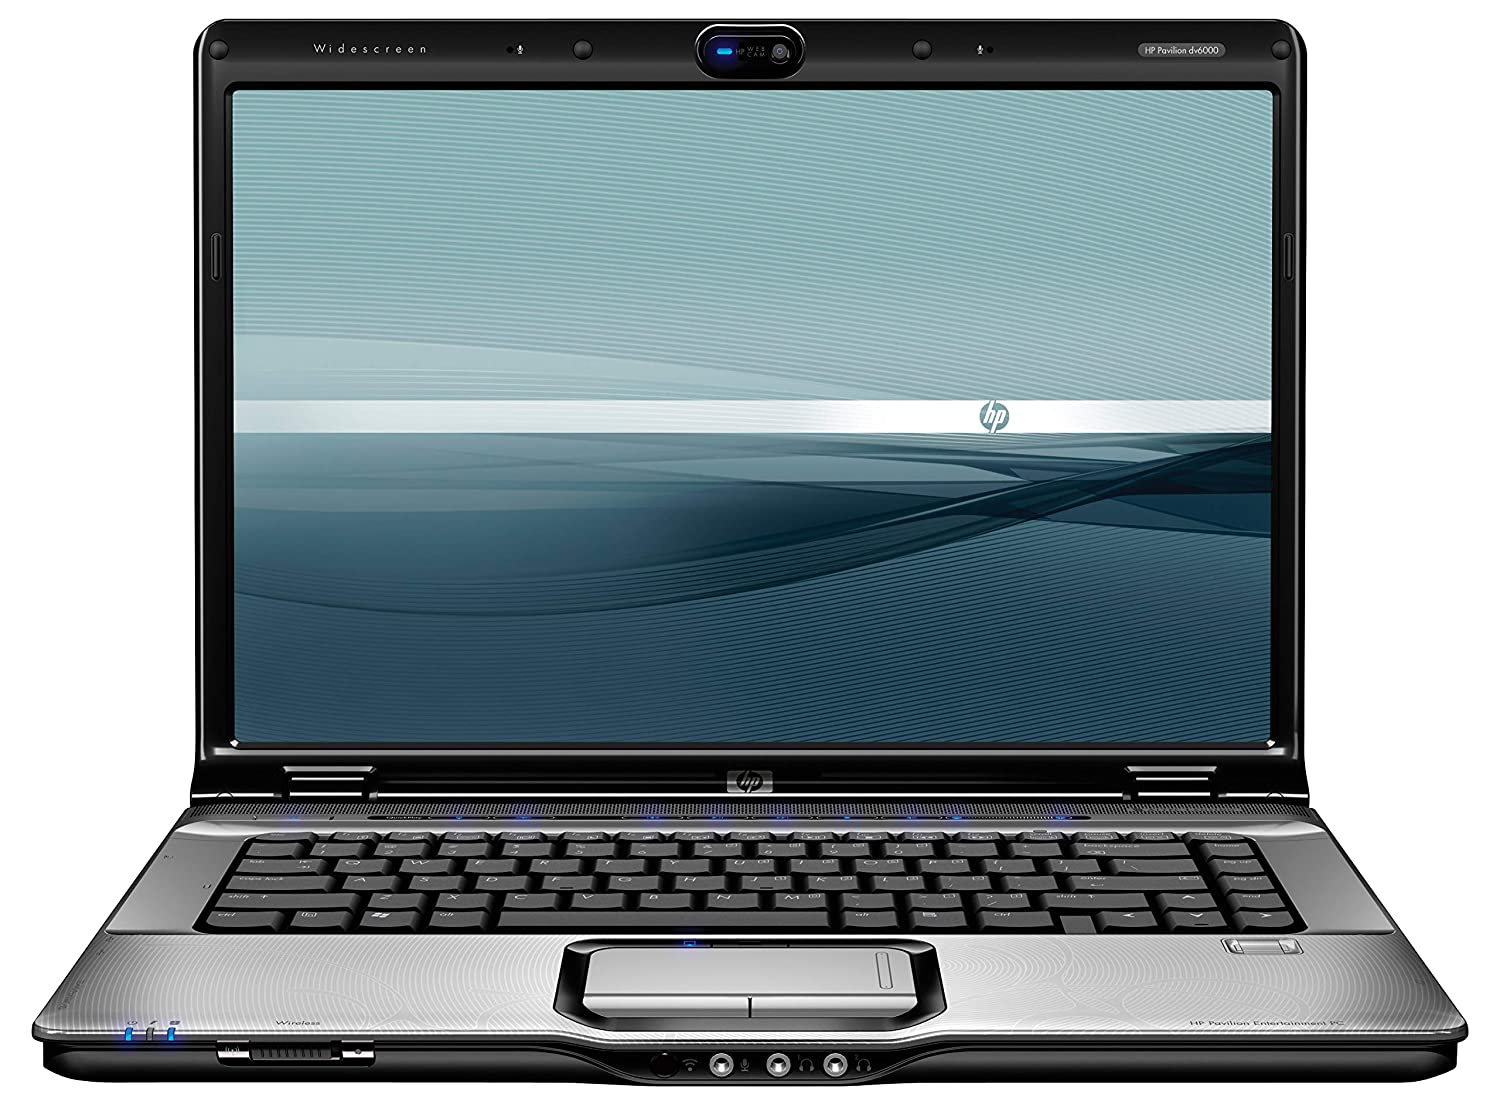 Amazon.com: HP Pavilion DV6775US 15.4-inch Entertainment Laptop (Intel Core 2 Duo T5450 Processor, 3 GB RAM, 250 GB Hard Drive, Vista Premium) Black: ...